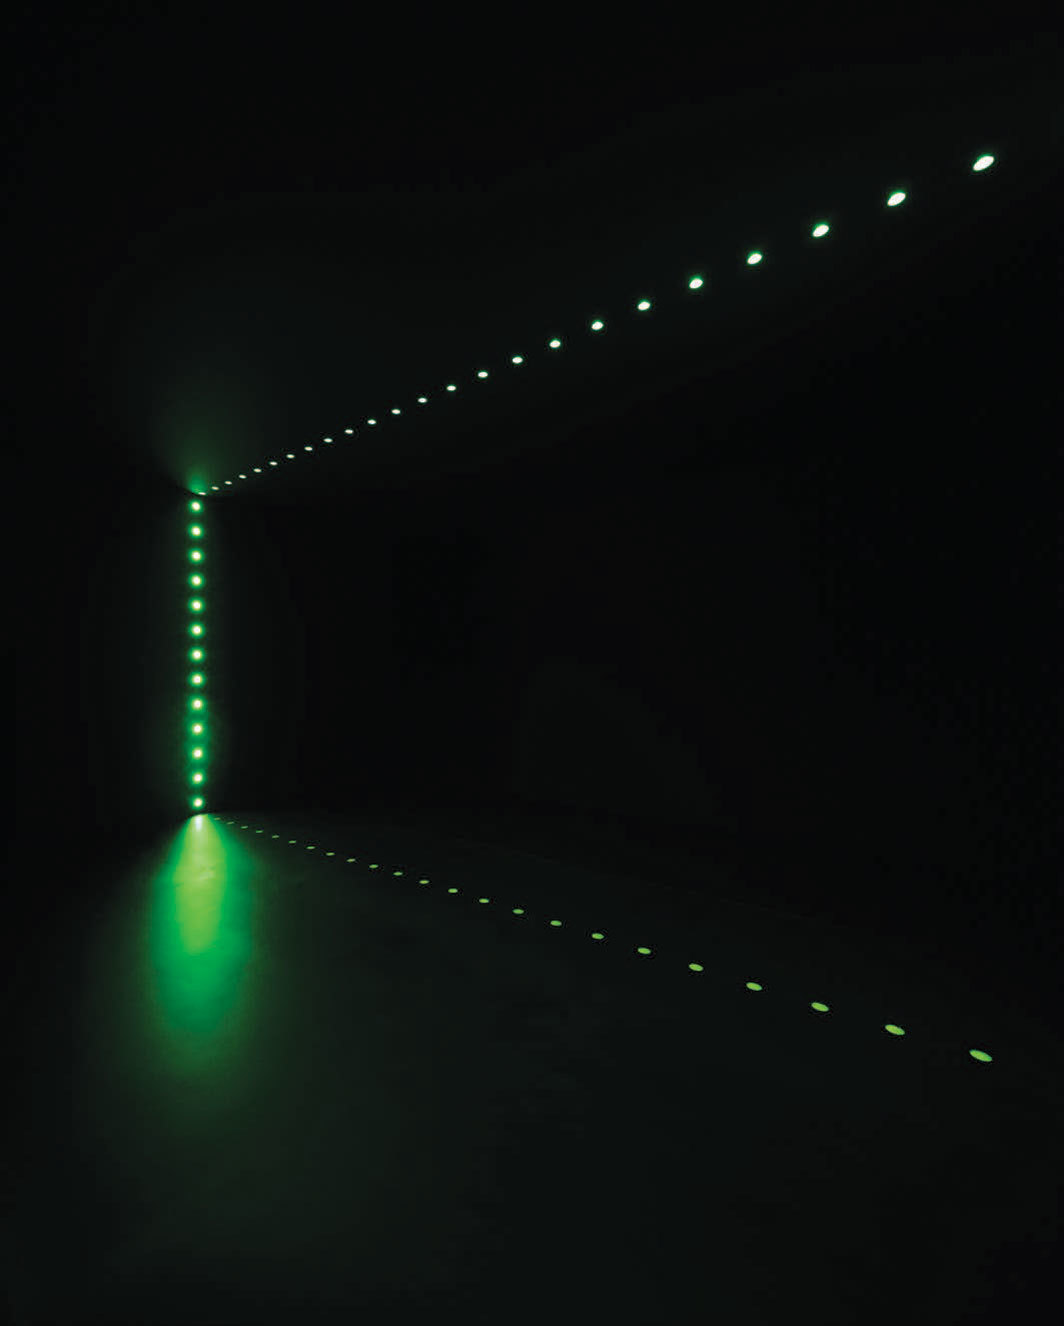 Lucio Fontana, Ambiente spaziale (Spatial Environment), 1966/2020, rectangular room, two corridors to enter and exit, walls and ceiling lined with black fabric, flooring in polyurethane foam covered in rubber, backlit holes with green neon crystal tubes. Installation view.